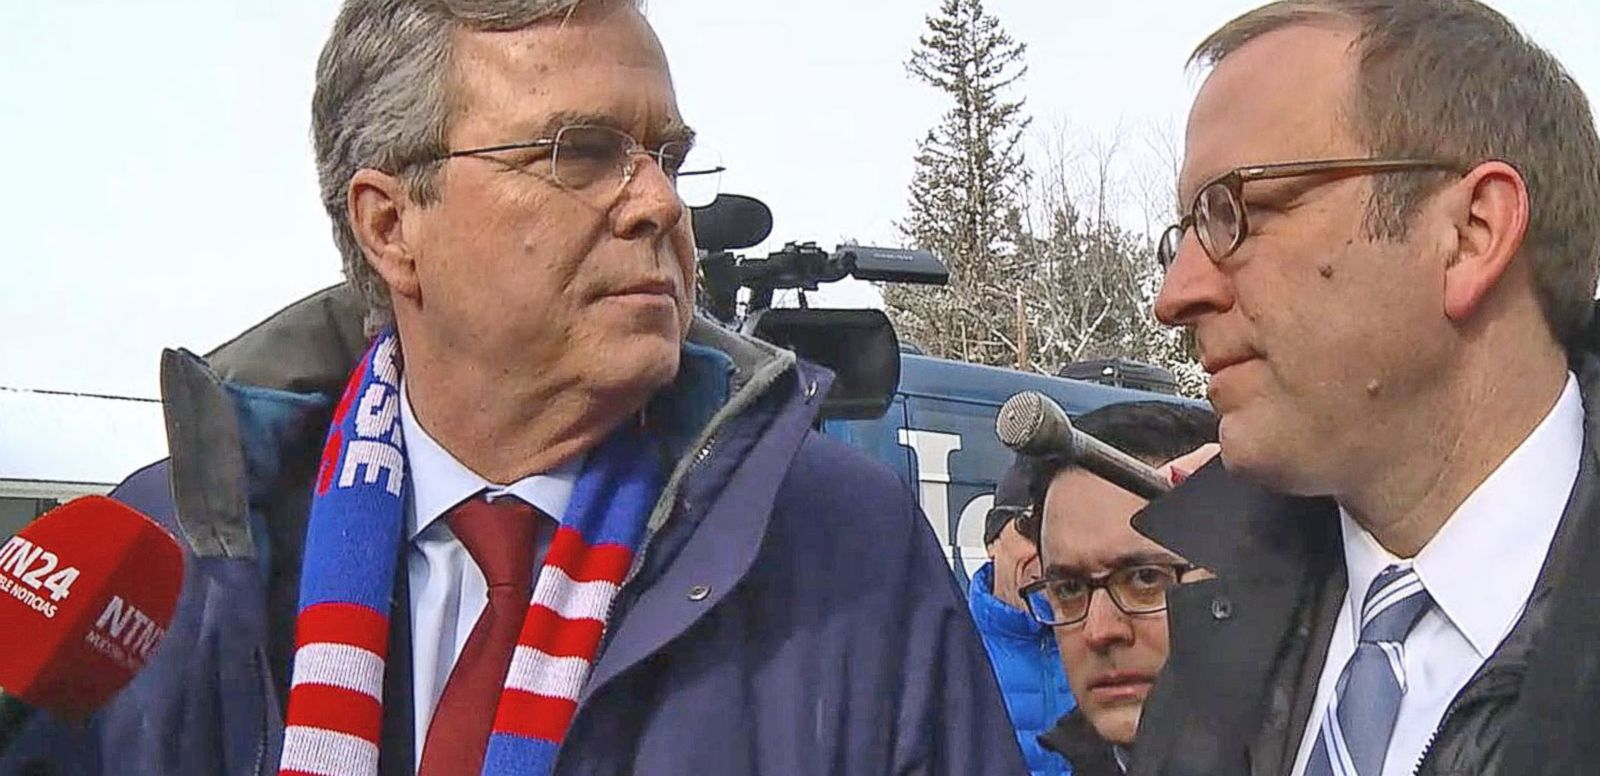 VIDEO: Jeb Bush Tells Jon Karl What He'd Say to Undecided Voters in New Hampshire